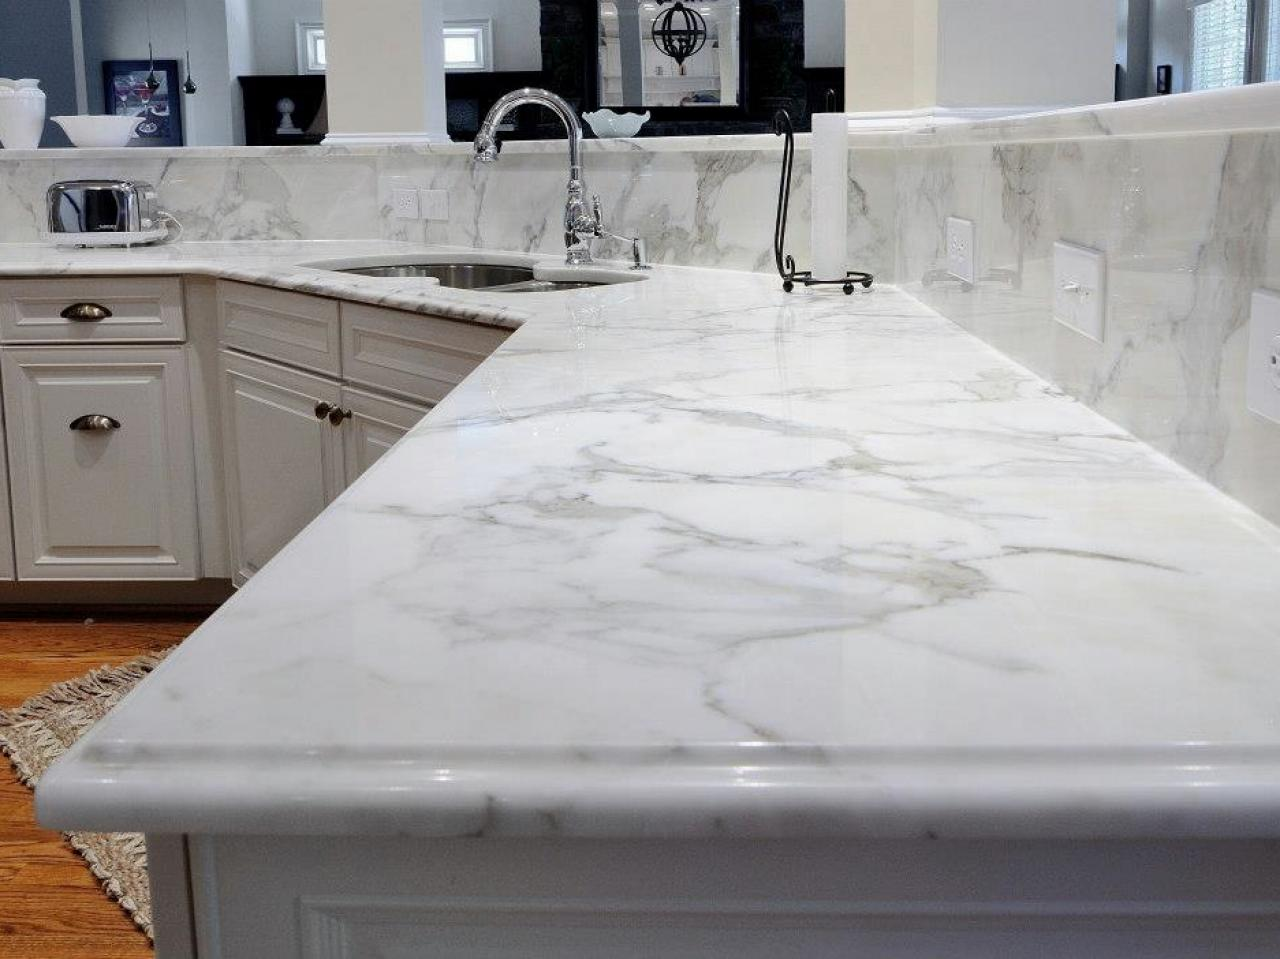 Marble kitchen countertops pictures ideas from hgtv kitchen ideas design with cabinets - Witte quartz werkblad ...